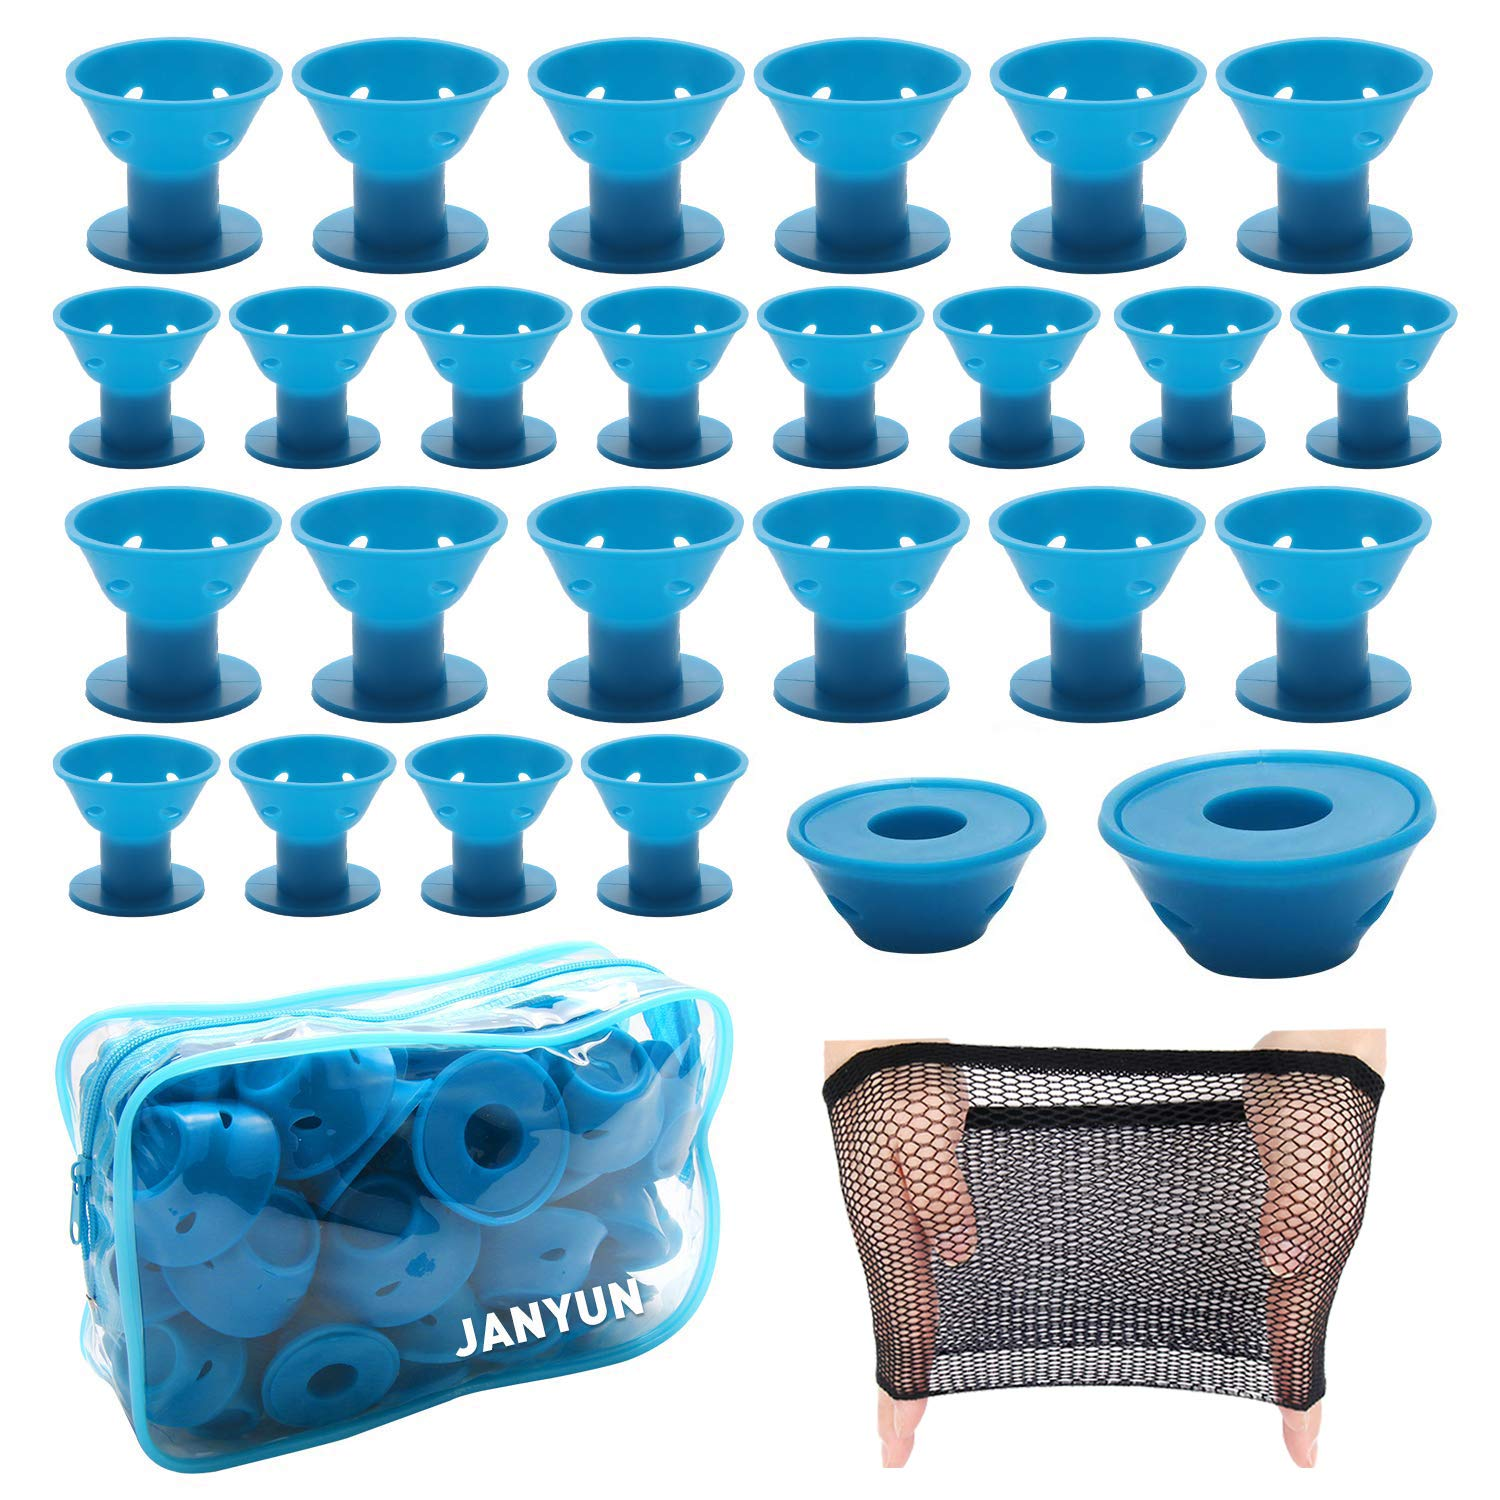 40 Pcs Blue Magic Silicone Hair Curlers with Bag and Hairnet Soft Rubber Magic Hair Care Rollers No